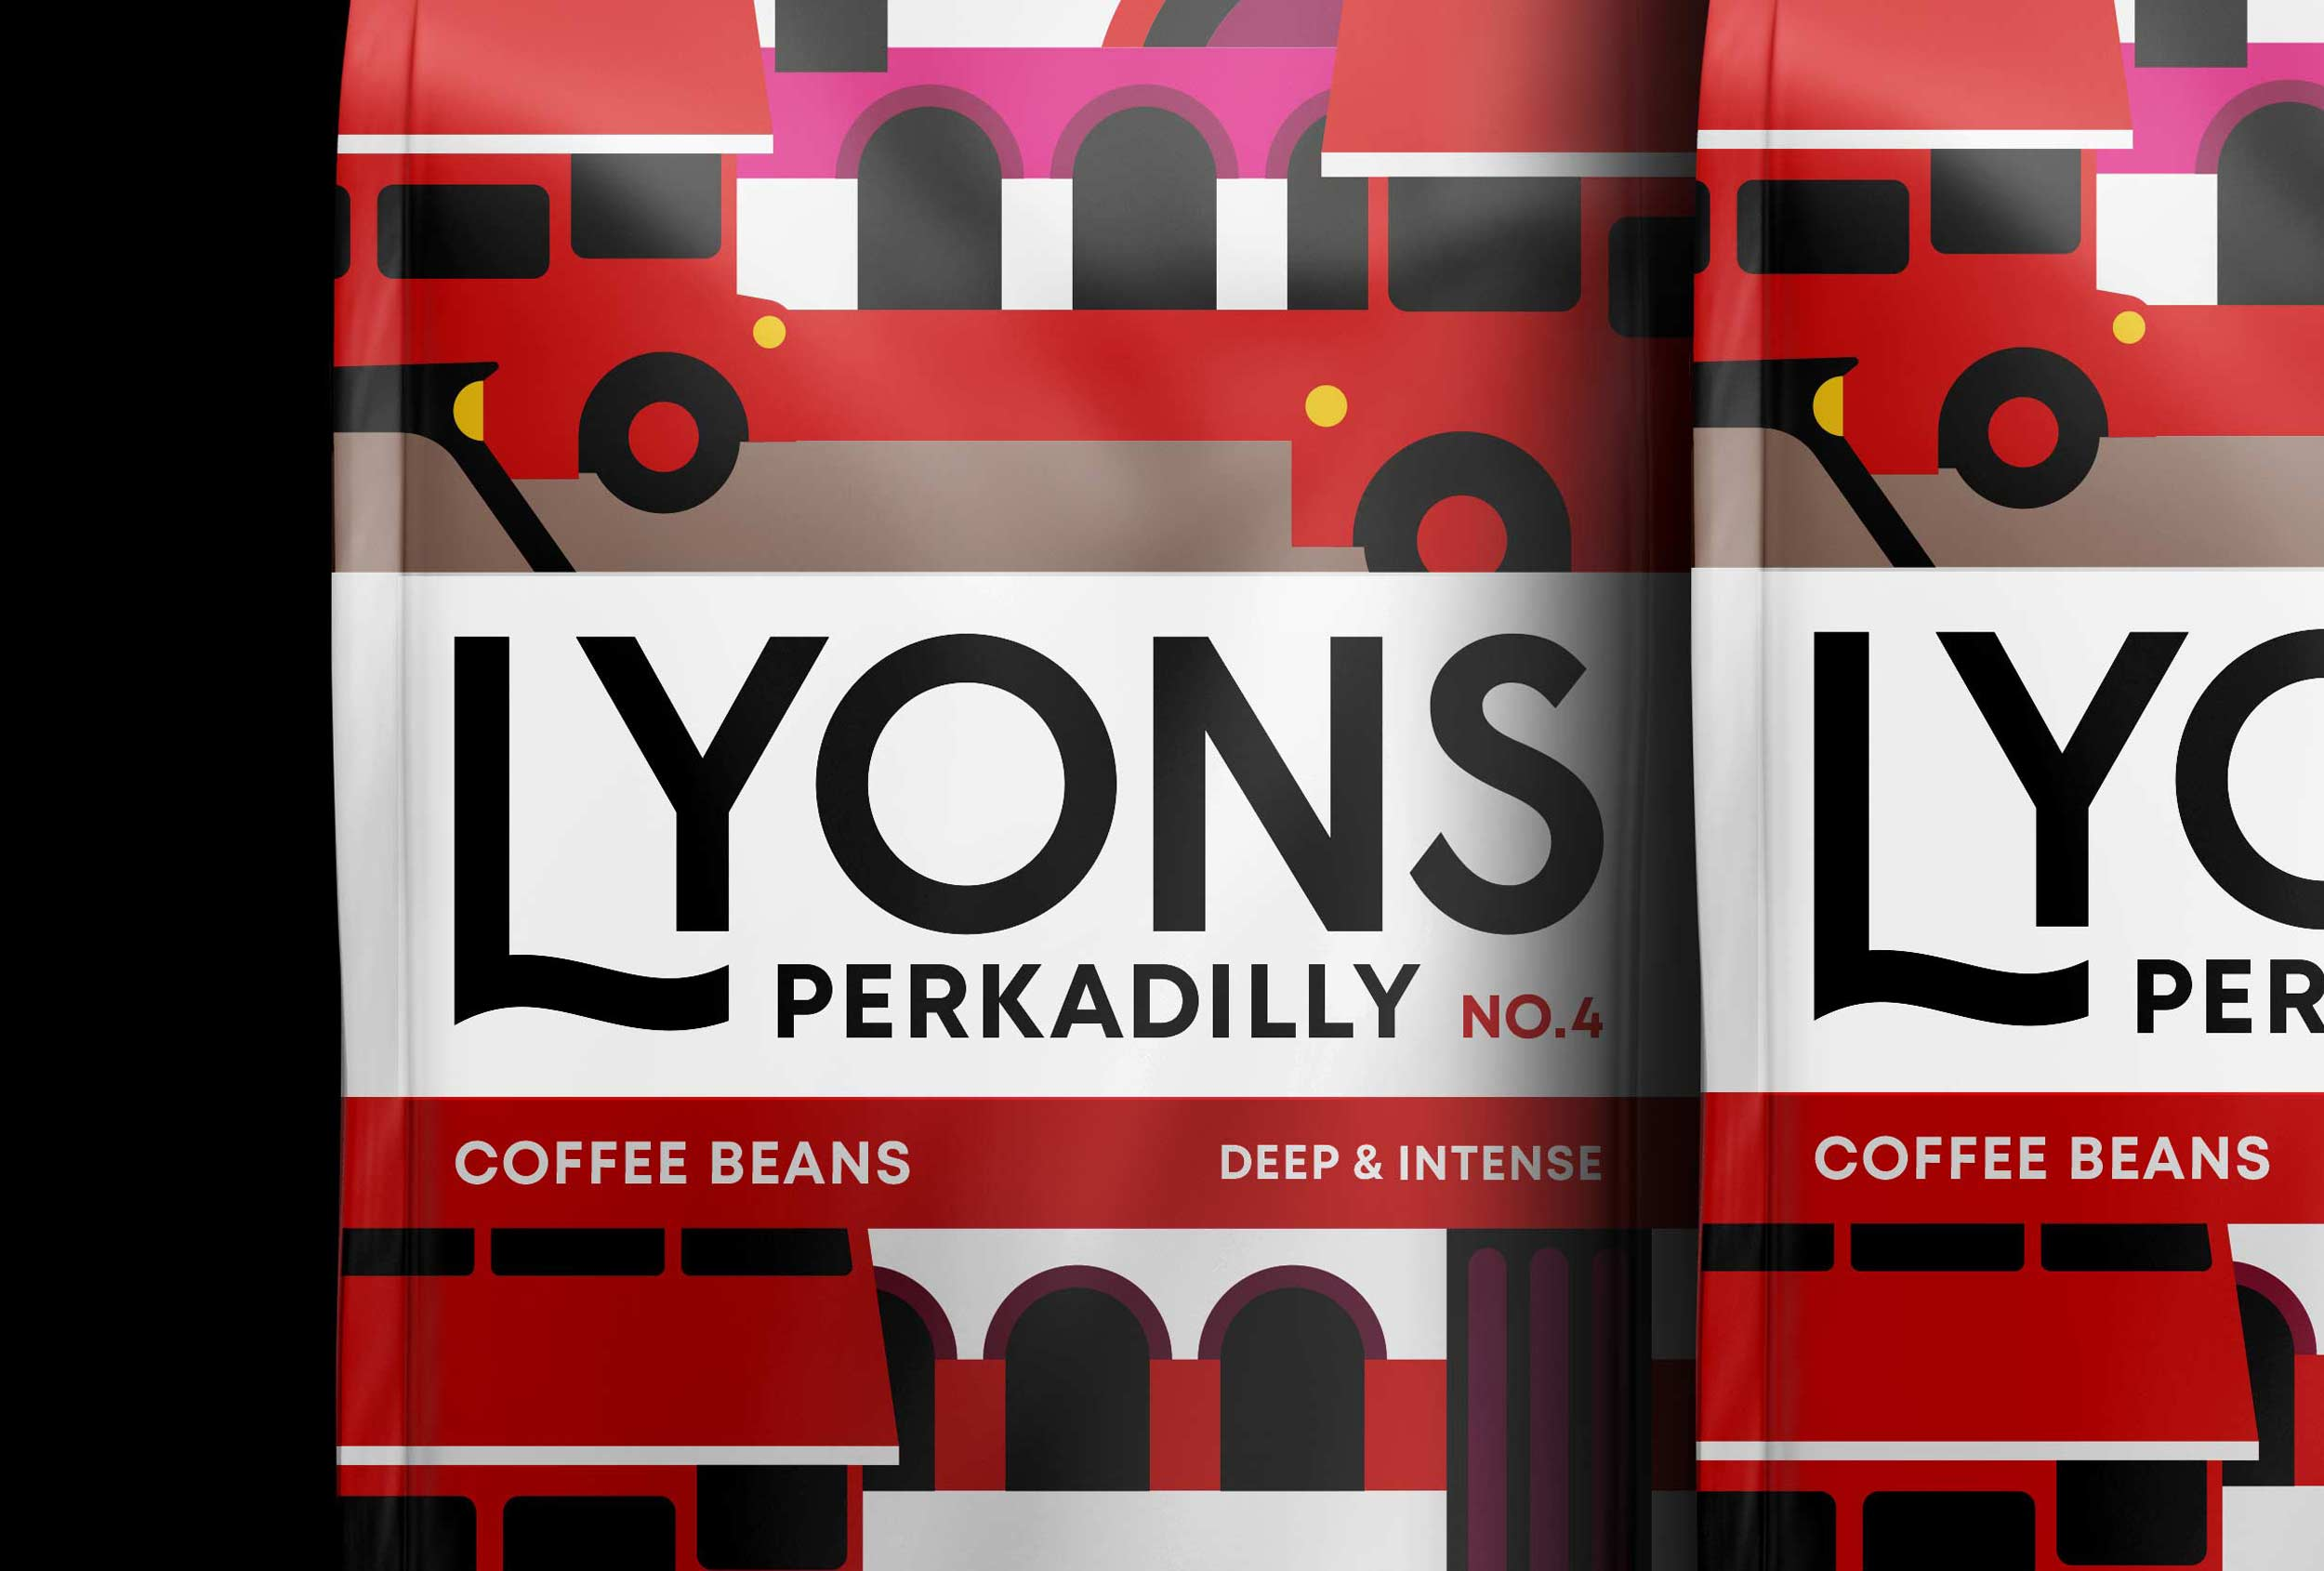 Packaging detail of Lyons Perkadilly. Naming and brand design by Distil Studio for UCC coffee.